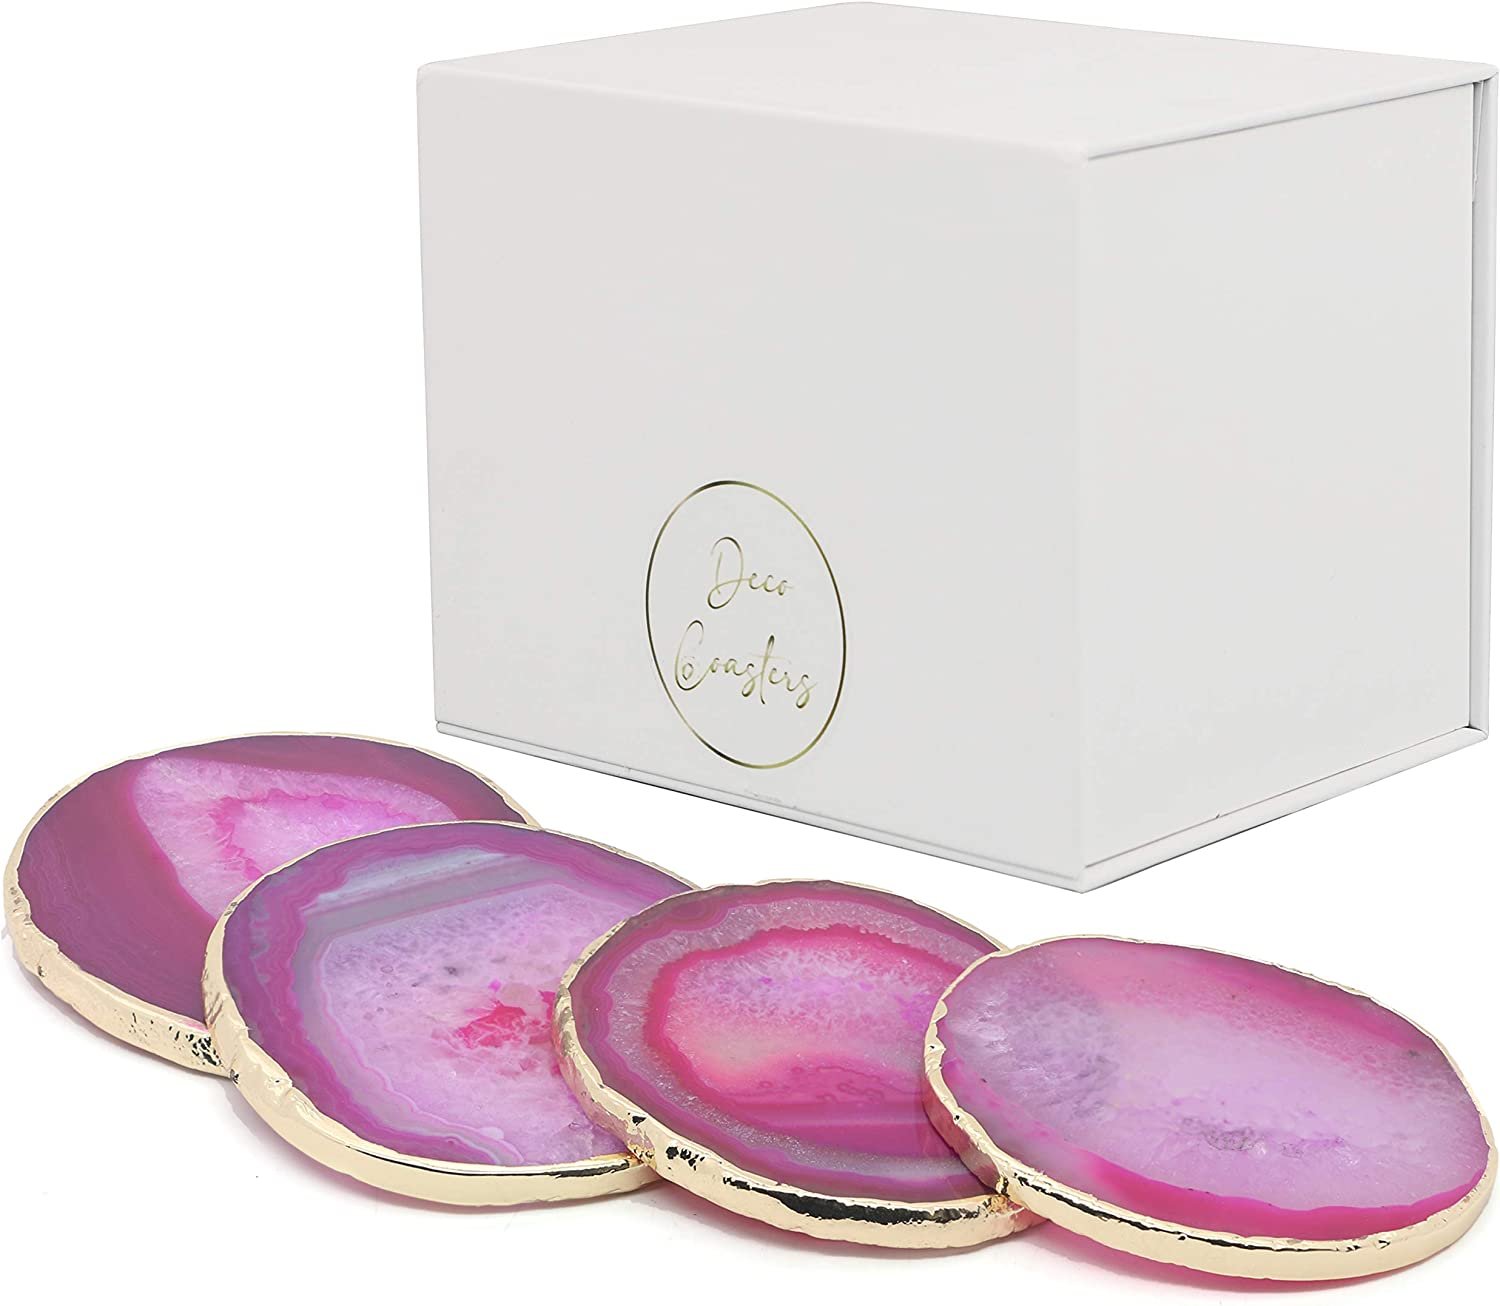 Oakland Mall Premium Agate Coaster Set of 4 Coasters Gold Memphis Mall Geode Hot Pink Rim